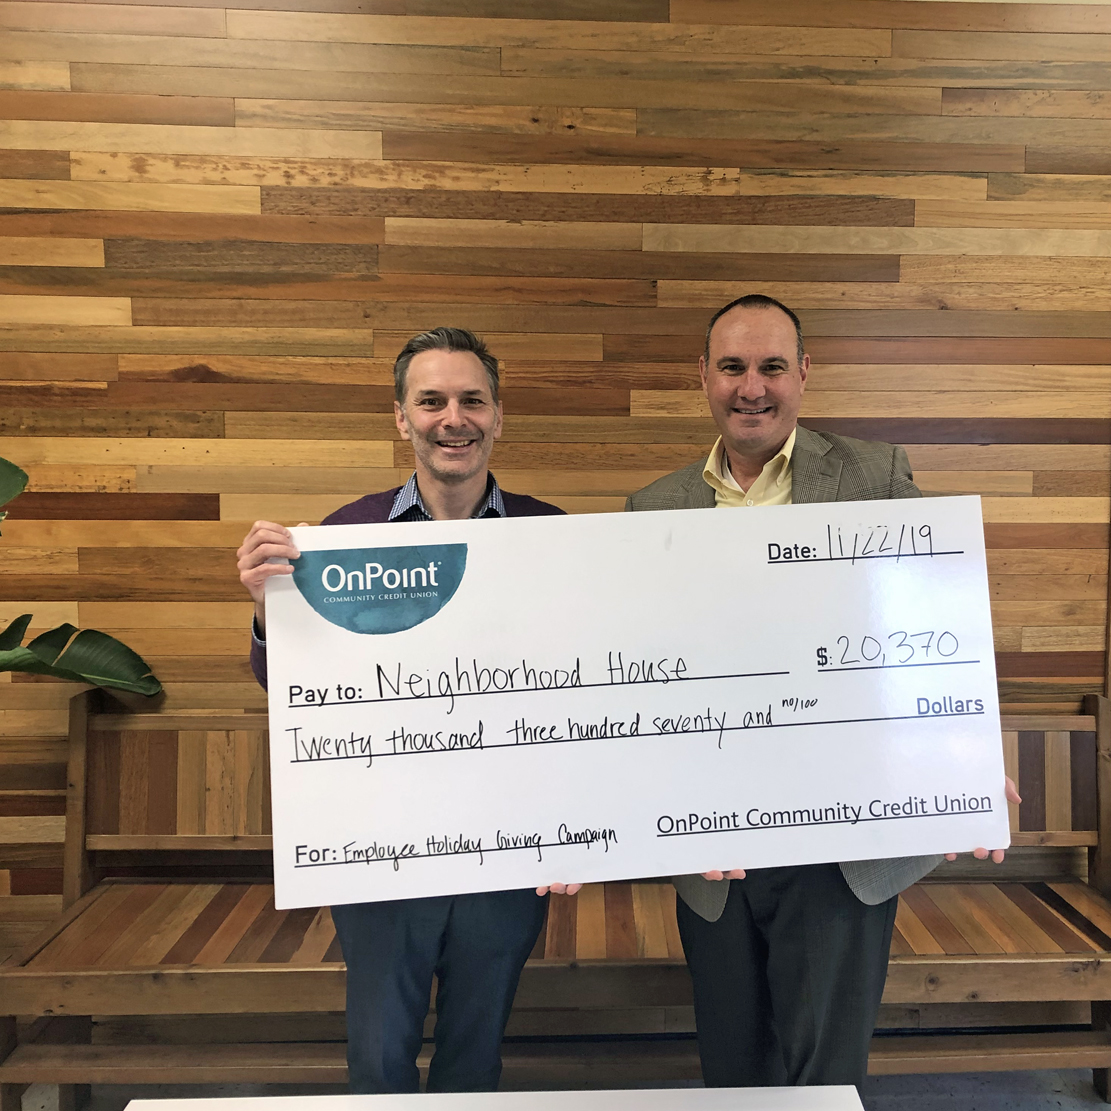 OnPoint Holiday Employee Giving Campaign_Neighborhood House check presentation